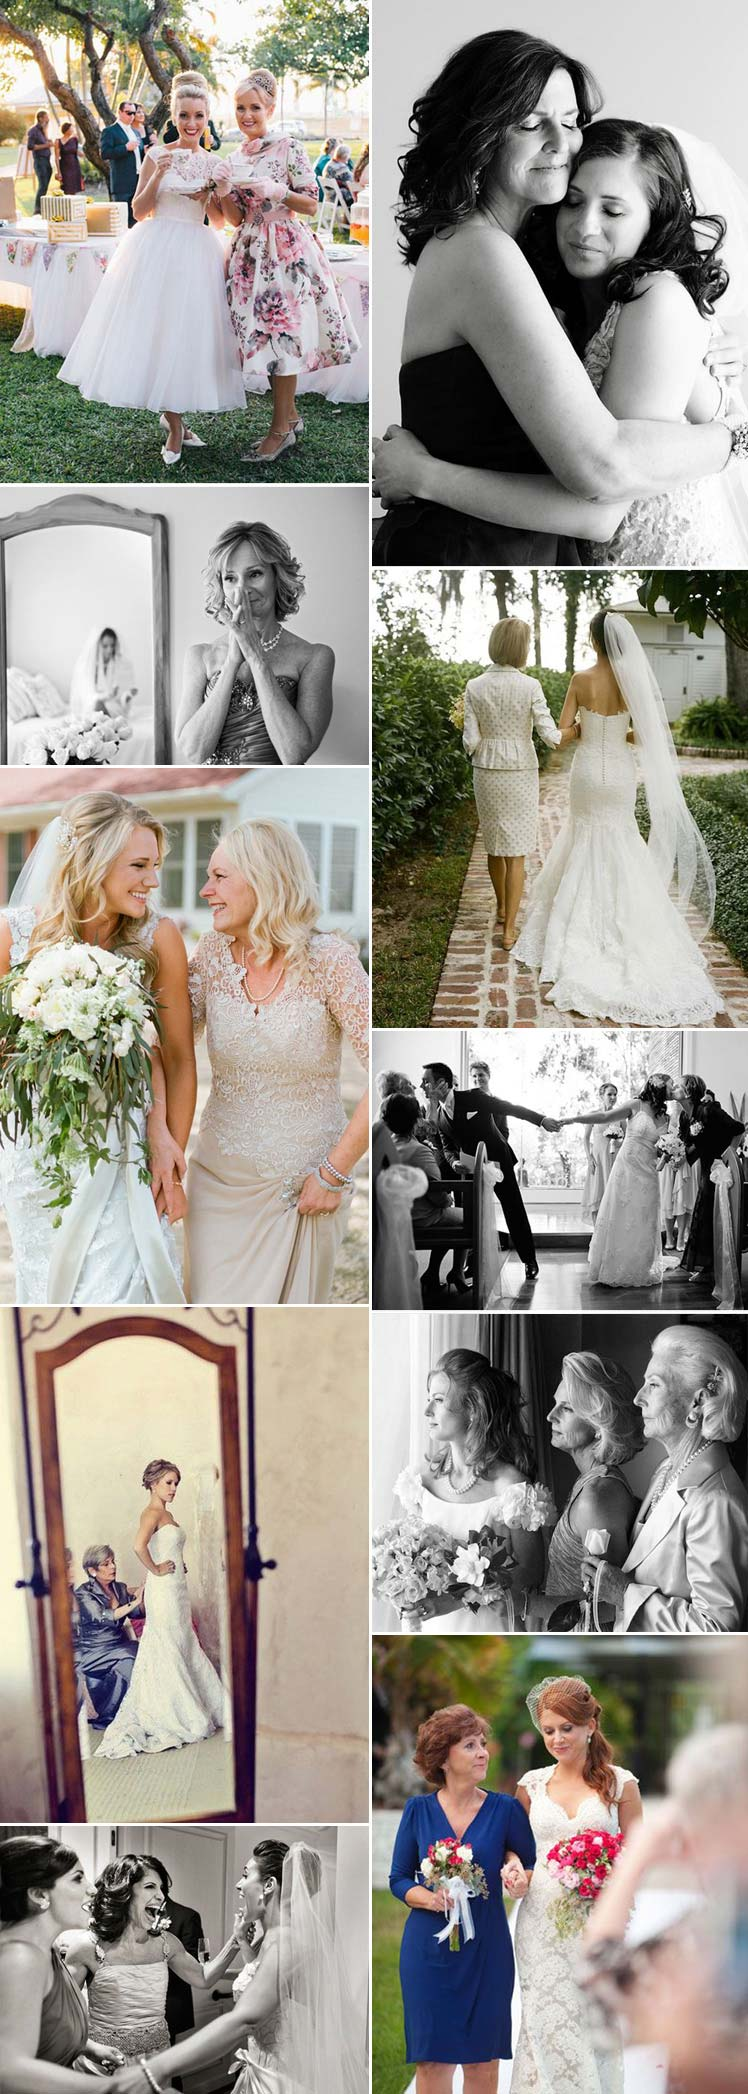 precious moments between and bride and her mother